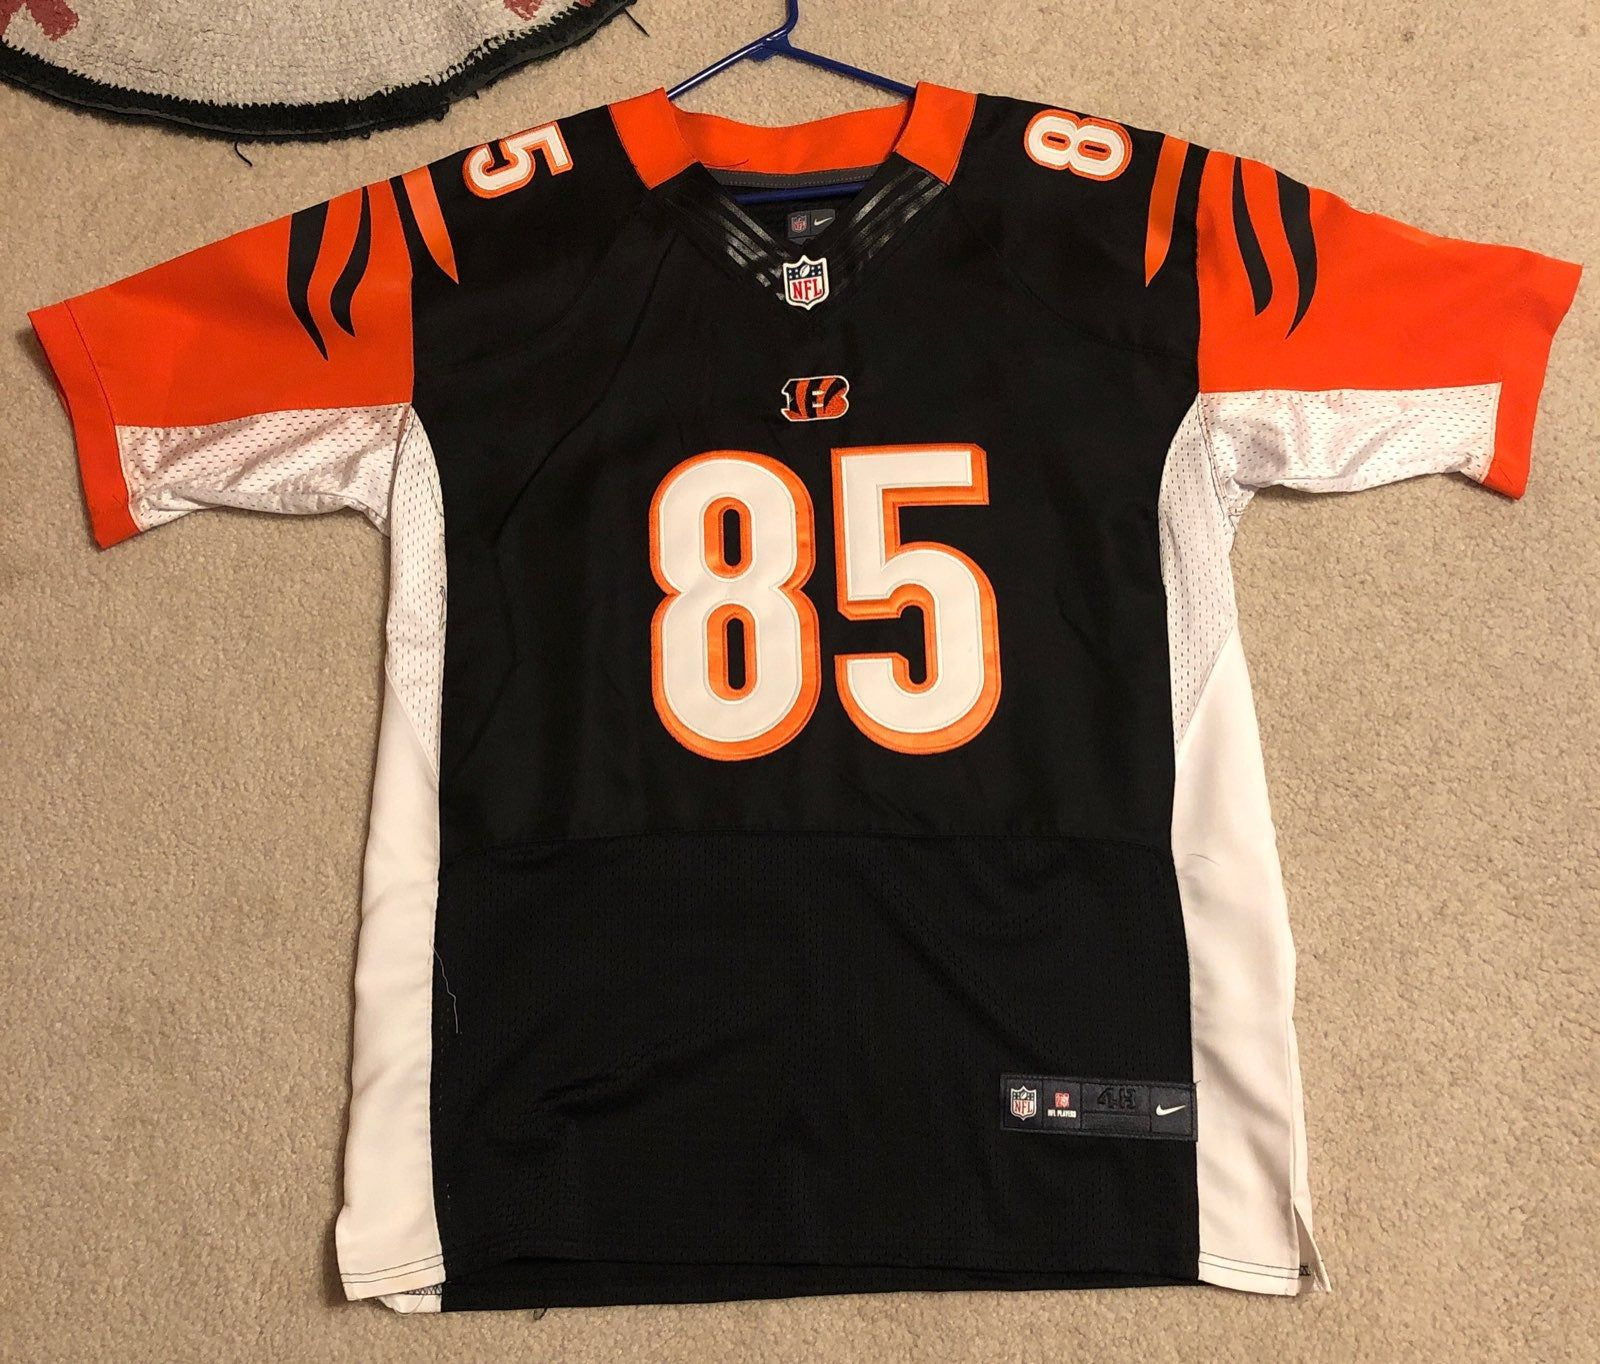 Authentic jersey. Everything is sewn own. Jersey is NWOT. Size 48 ...